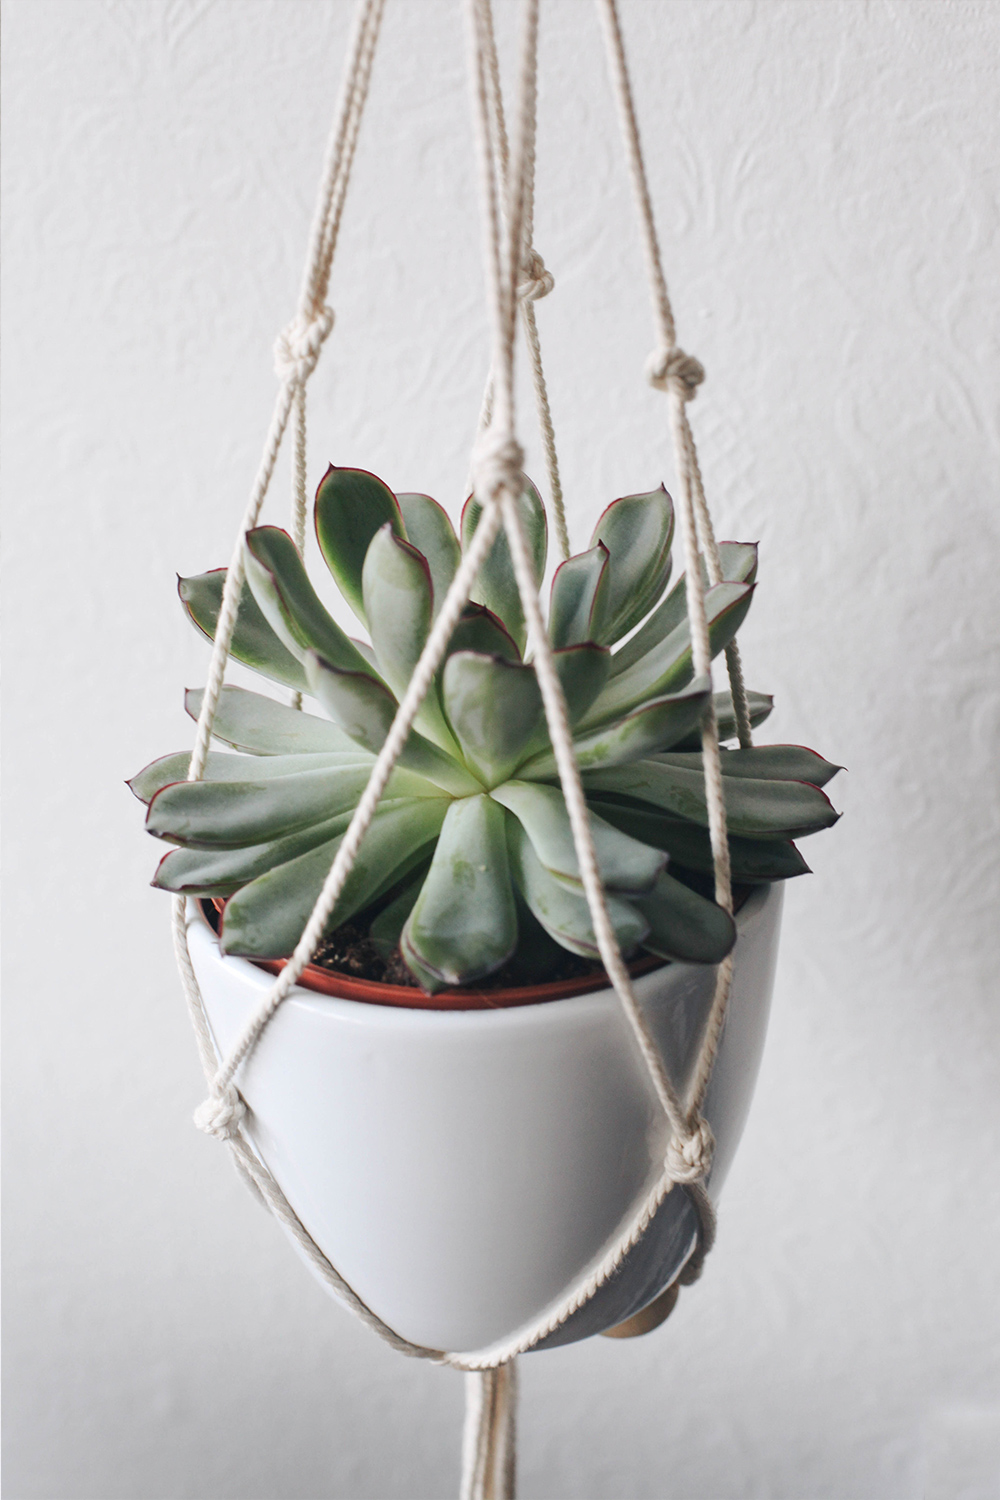 Diy suspension macram pour plante moodfeather - Suspension pot de fleur macrame ...